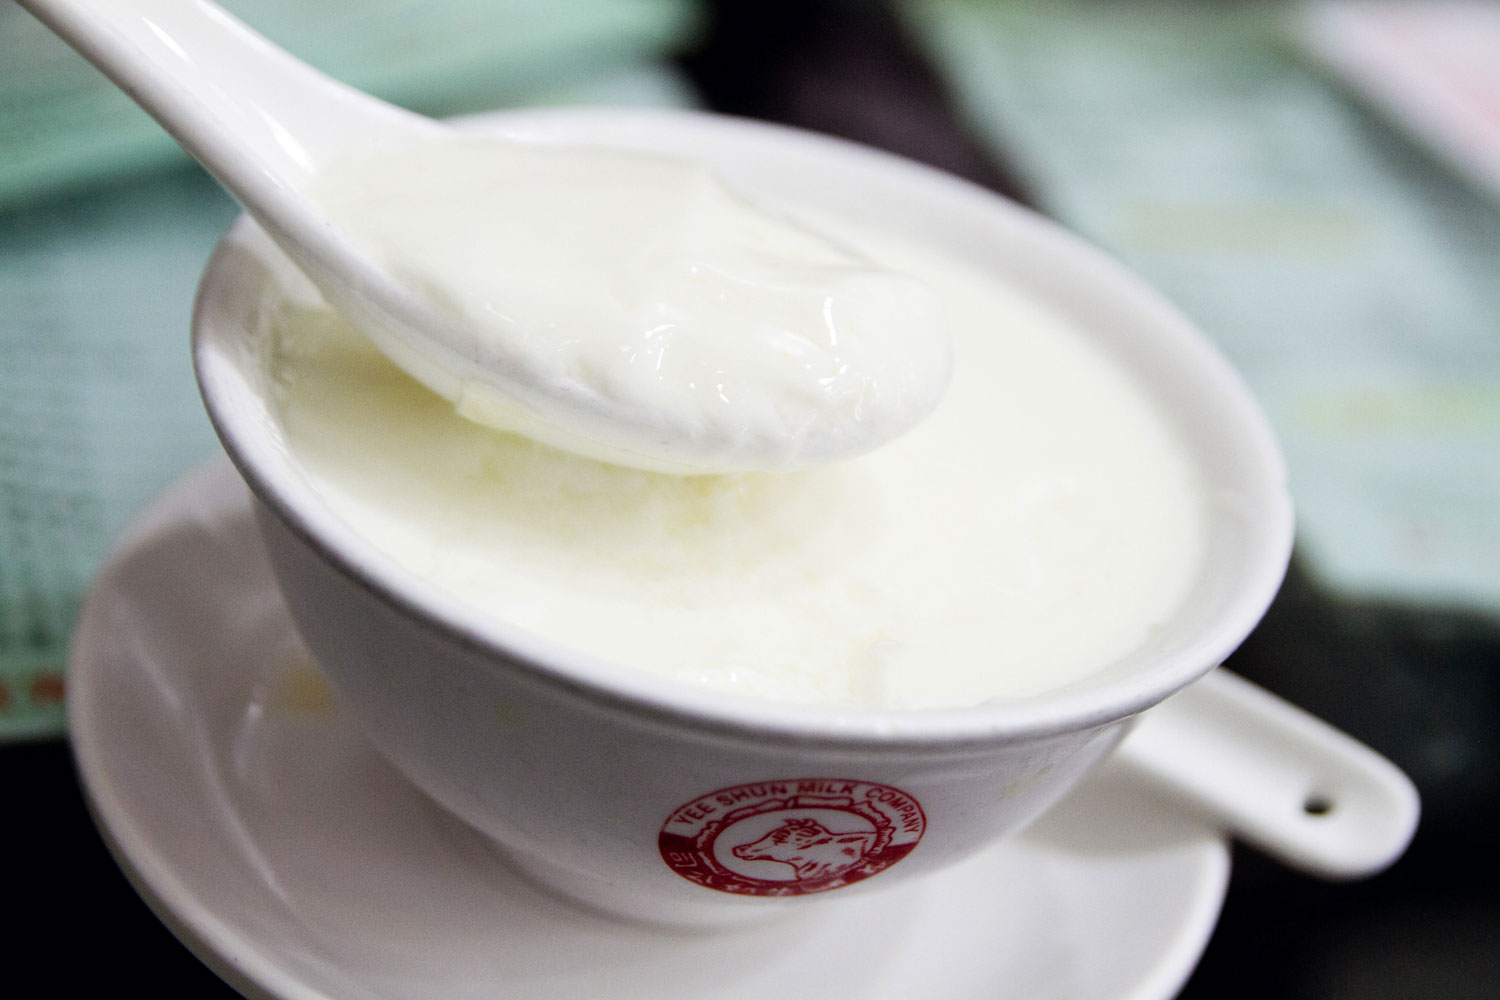 Macau dishes steamed milk pudding